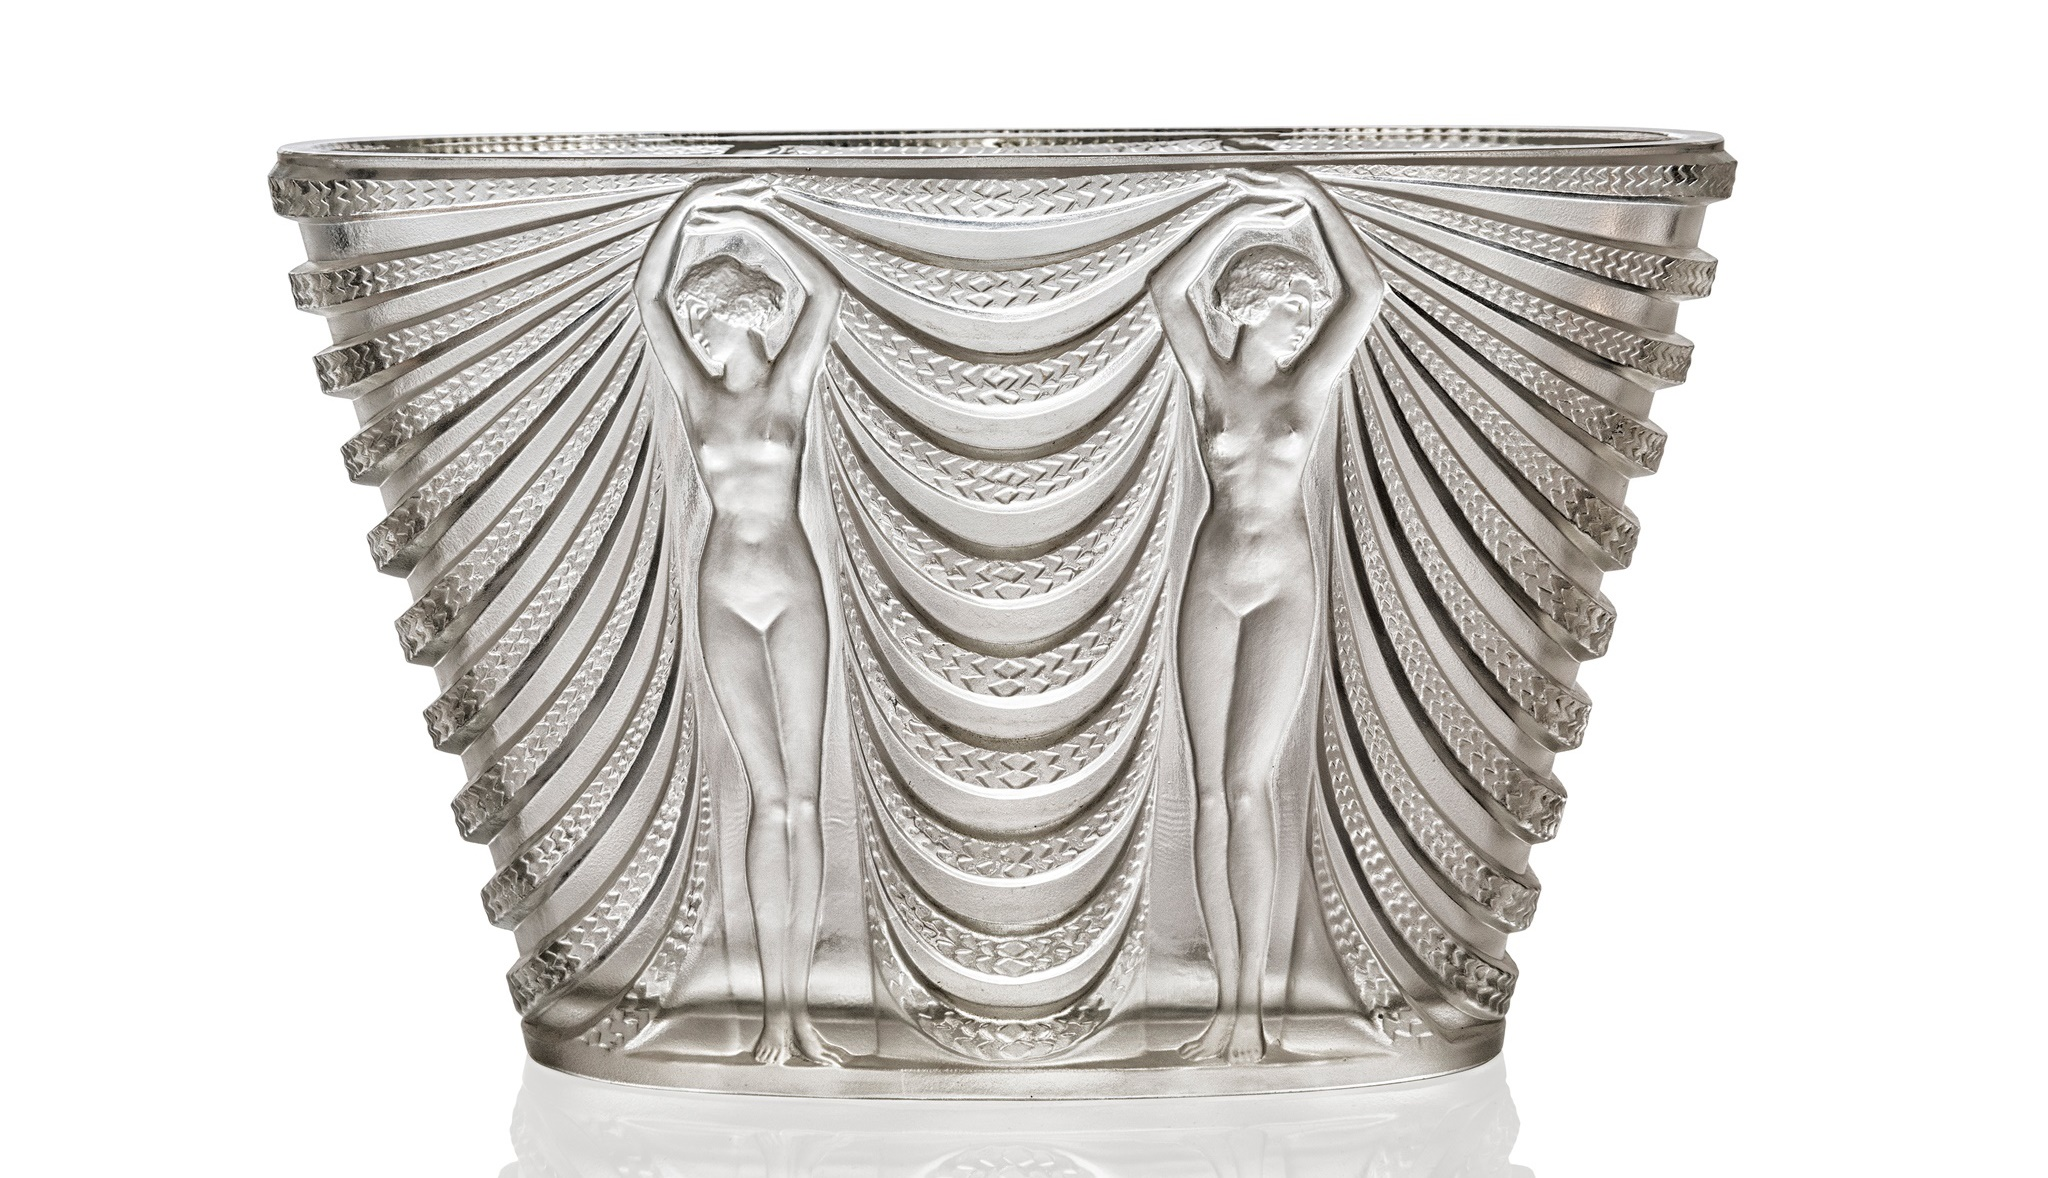 RENÉ LALIQUE (FRENCH 1860-1945) CEYLAN VASE, NO. 905